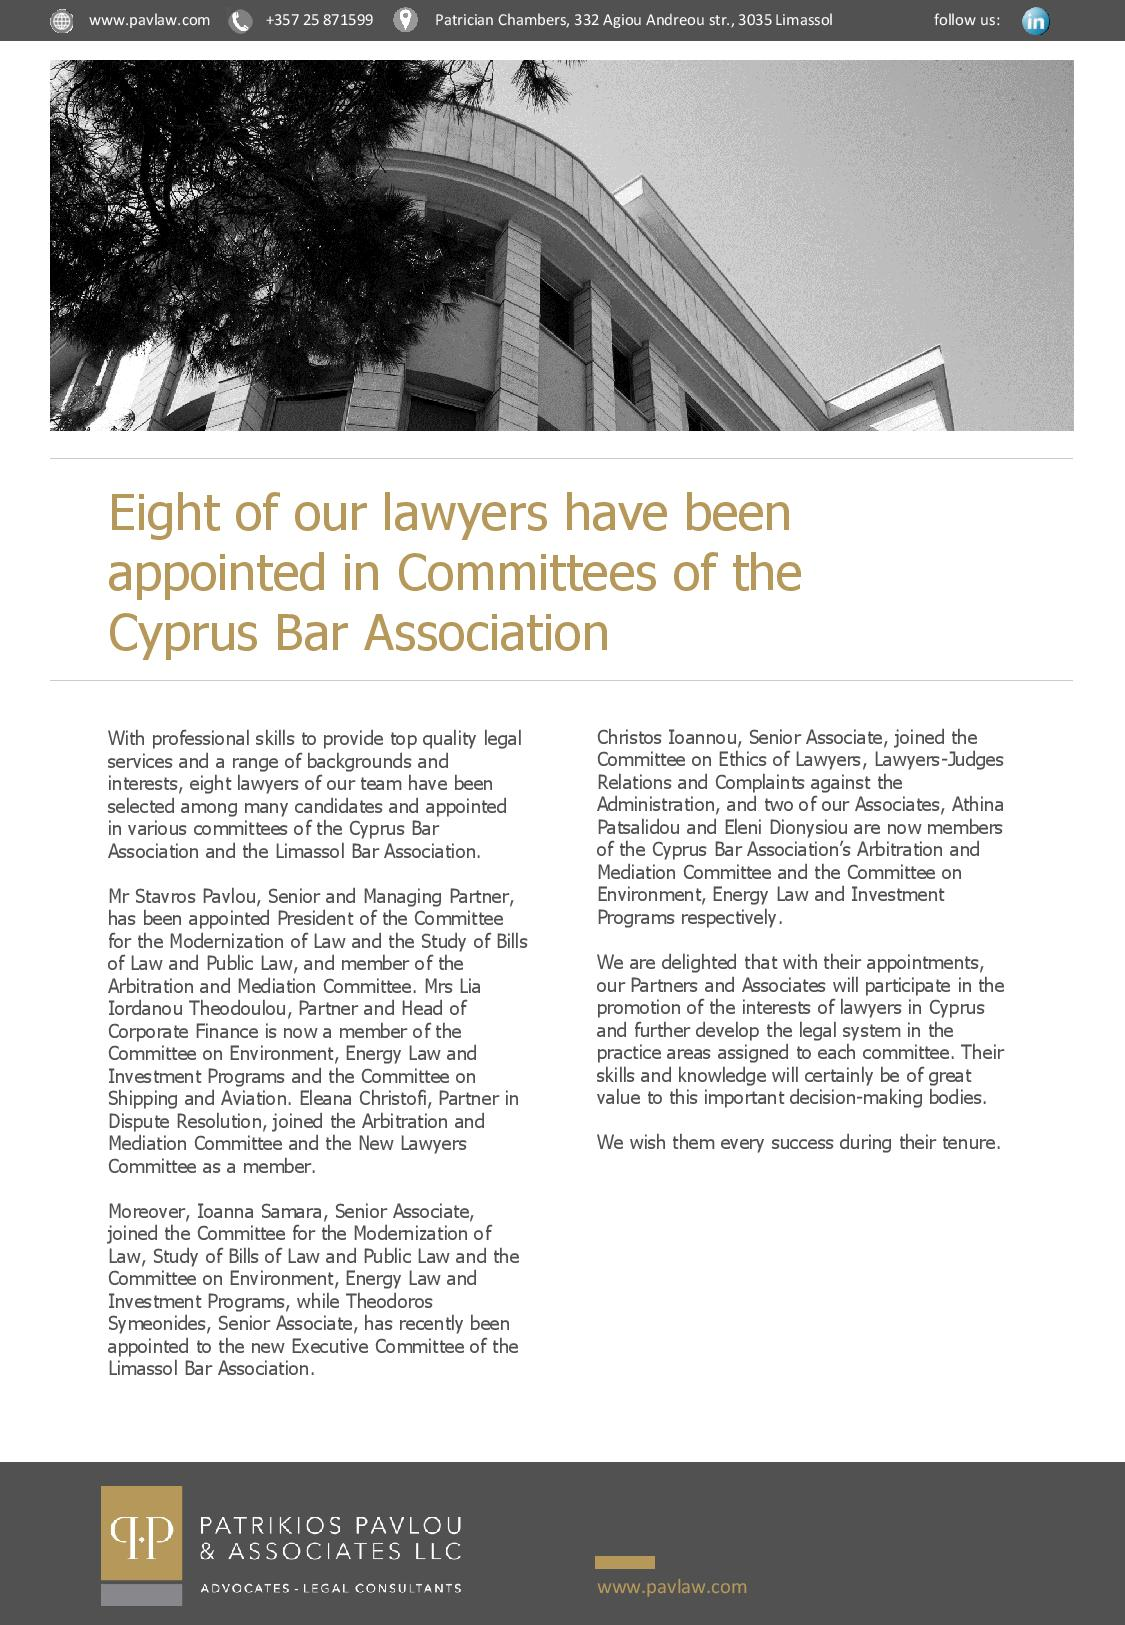 Patrikios Pavlou & Associates LLC News: Eight of our lawyers have been appointed in Committees of the Cyprus Bar Association